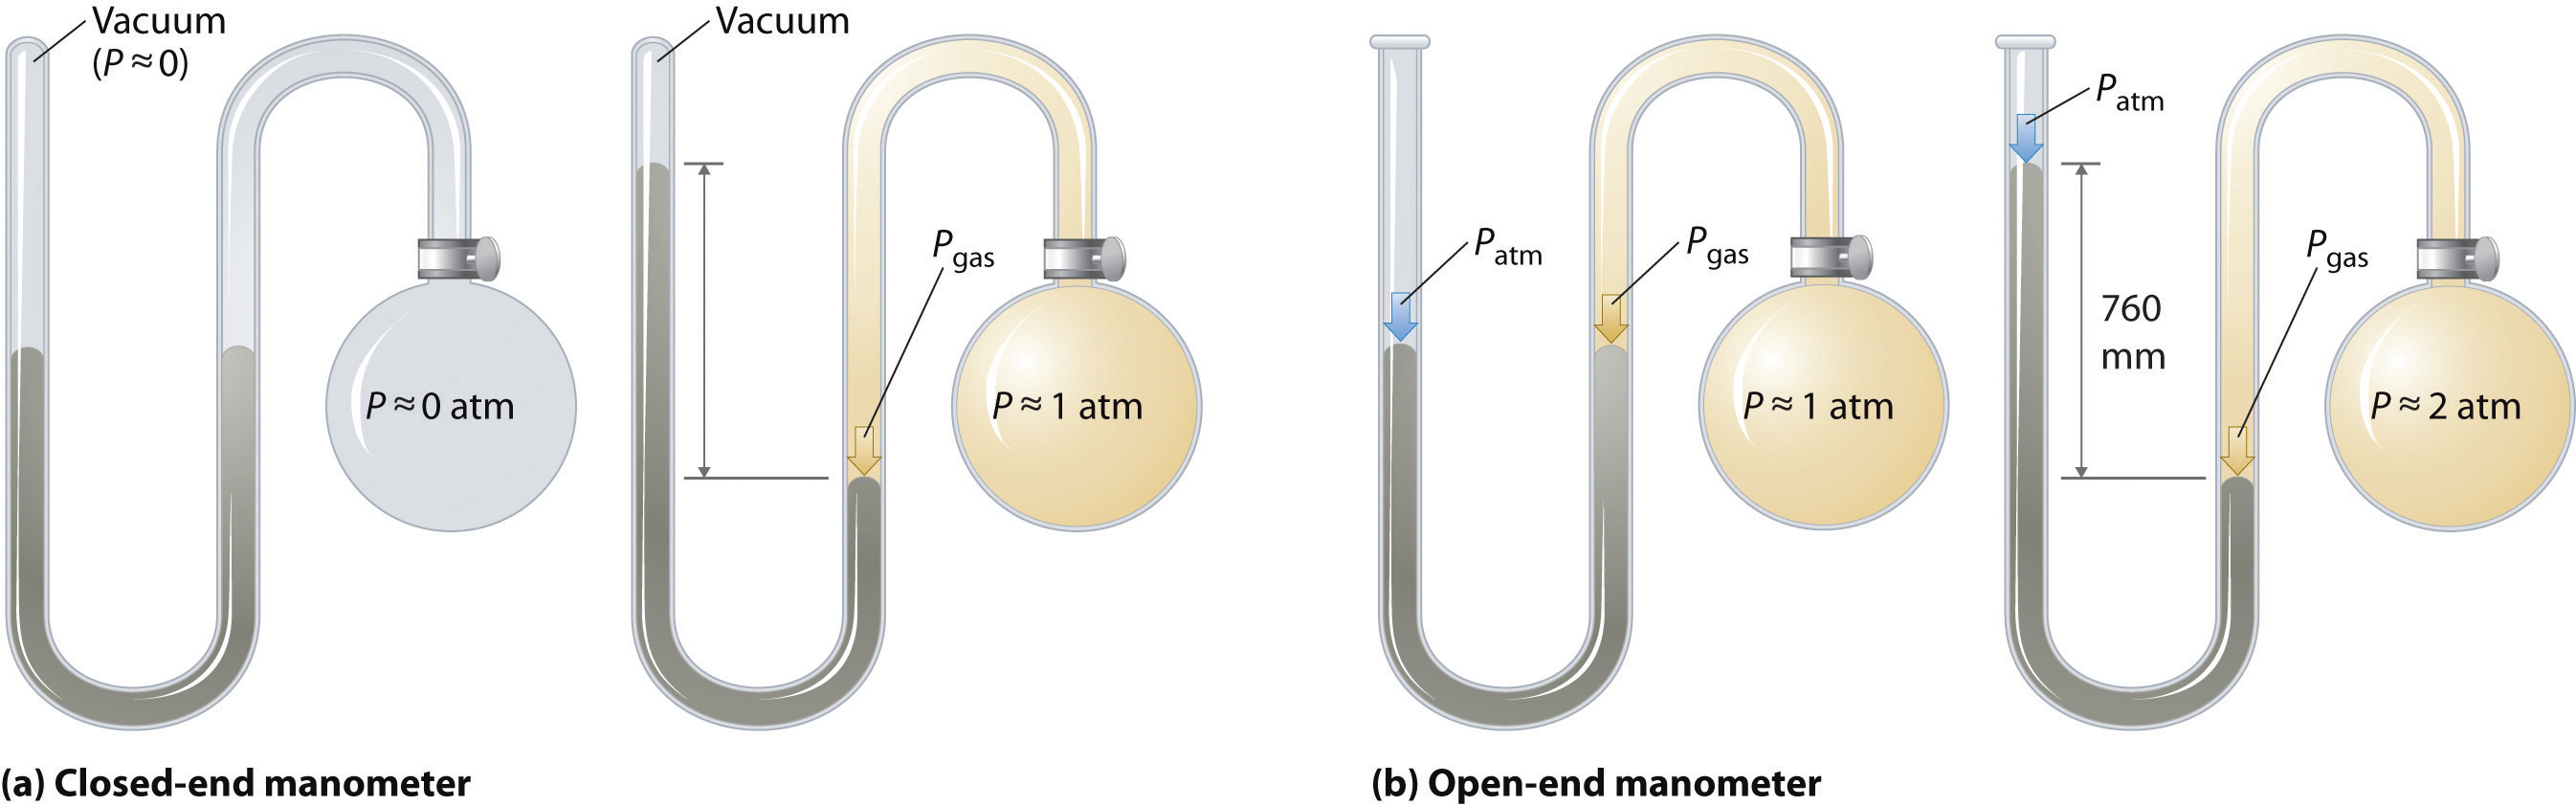 how to solve manometer problems